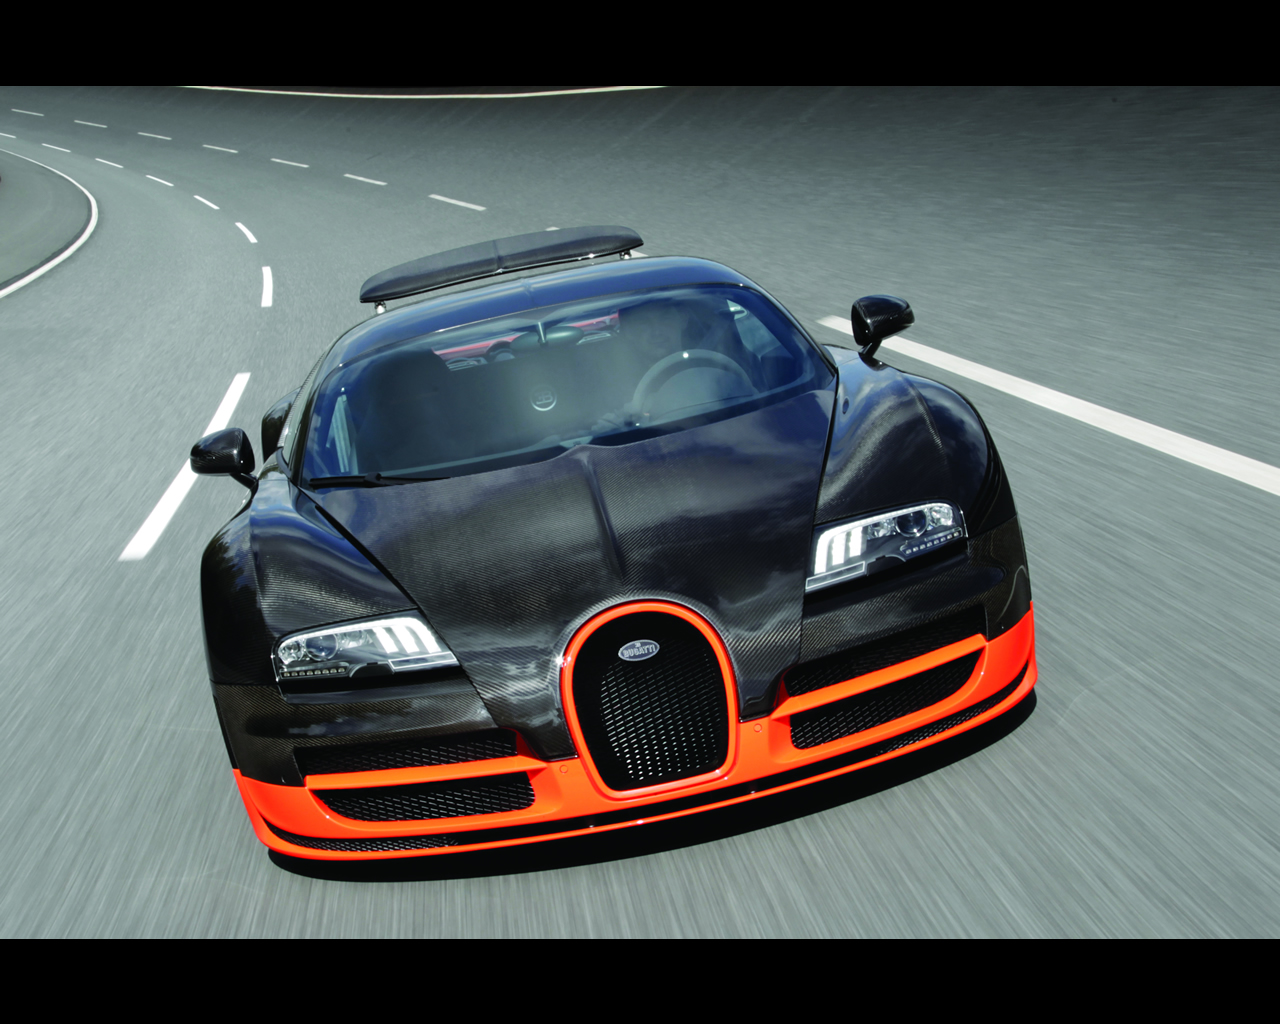 worldrecord bugatti veyron 16 4 super sport wallpapers 1280x1024. Cars Review. Best American Auto & Cars Review